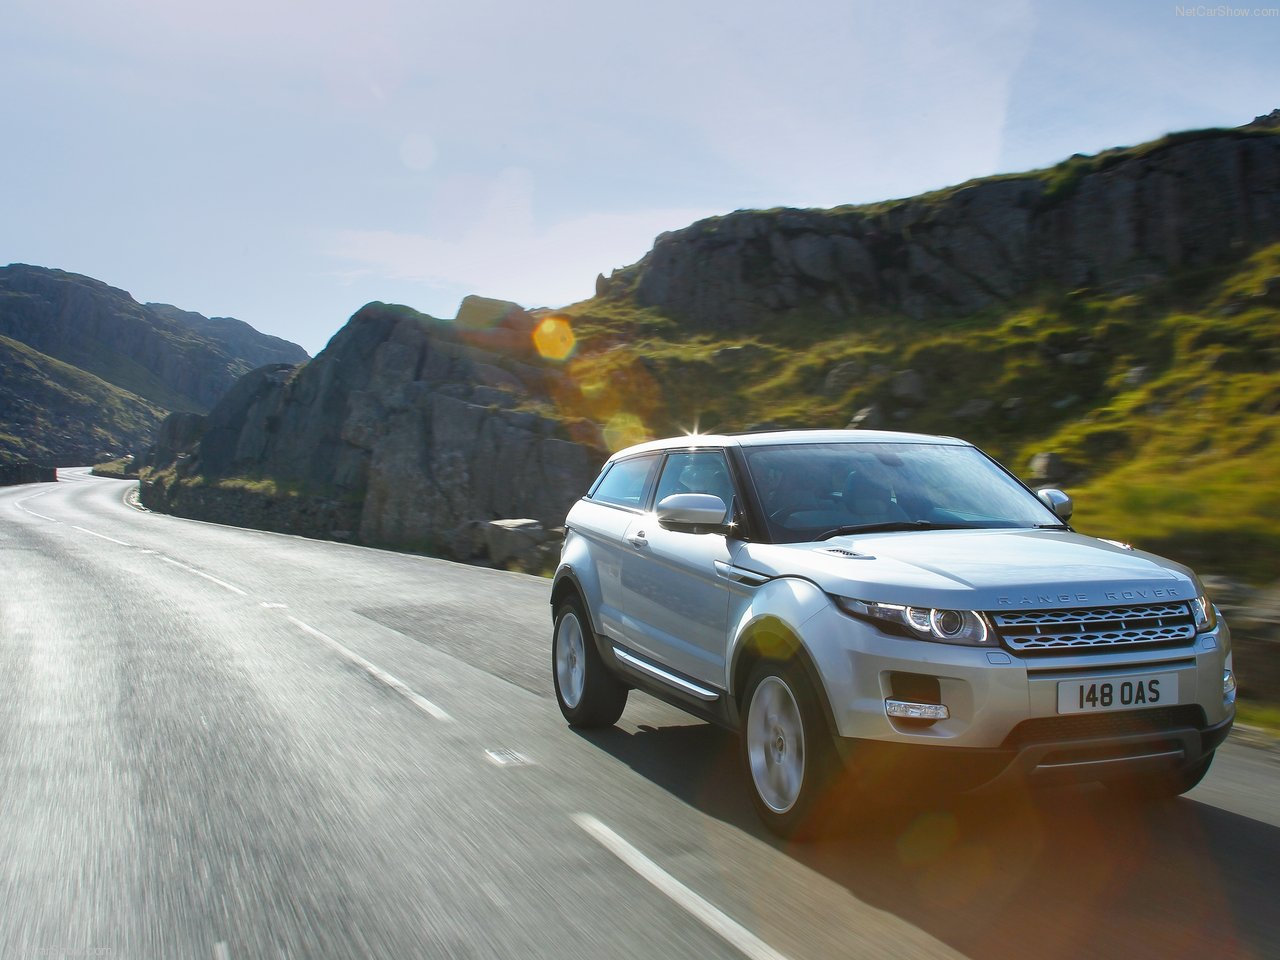 Land Rover Range Rover Evoque photo 87433